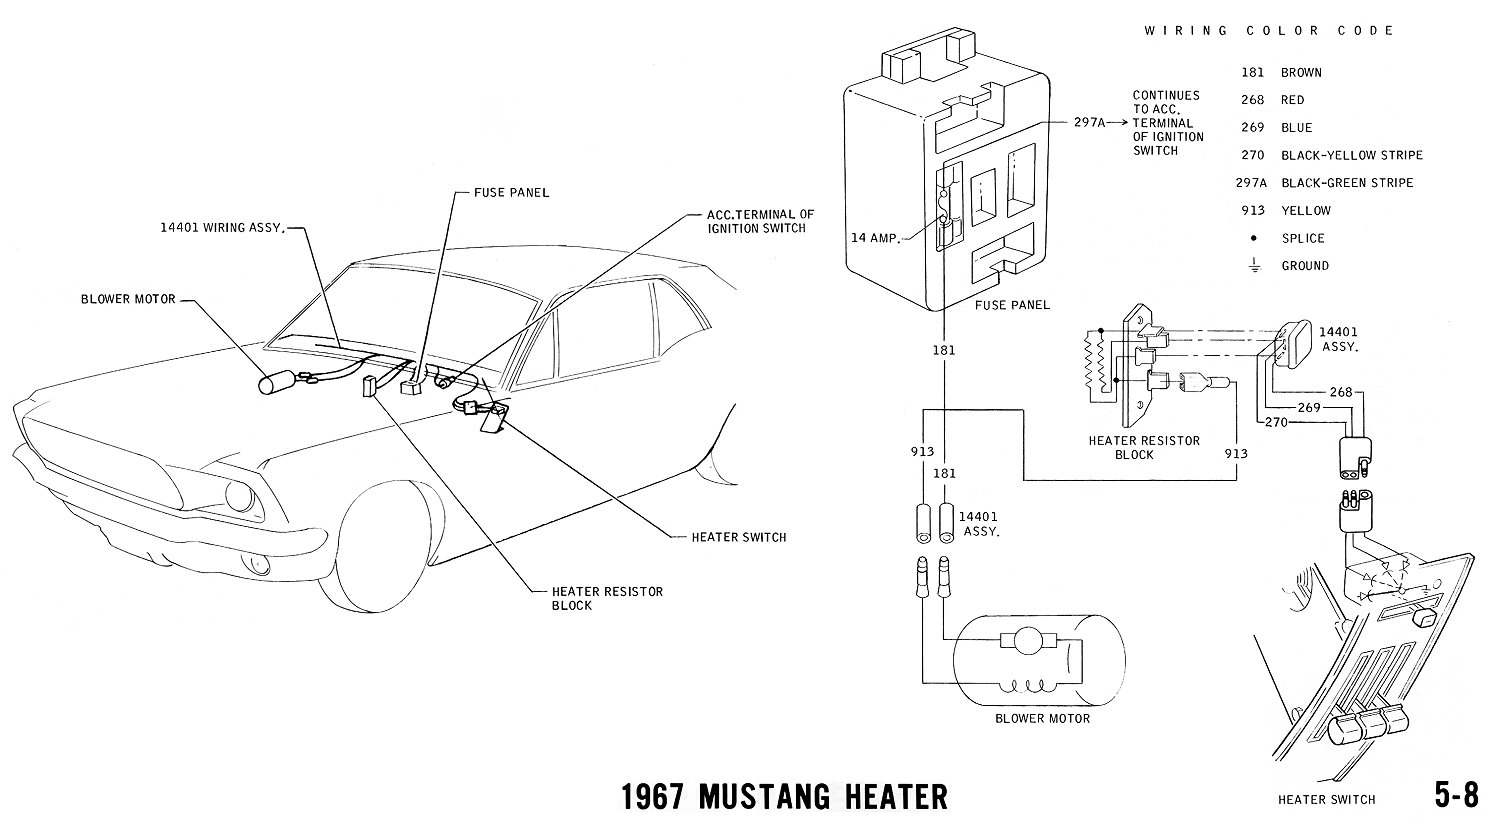 1966 gto fuse panel diagram Images Gallery